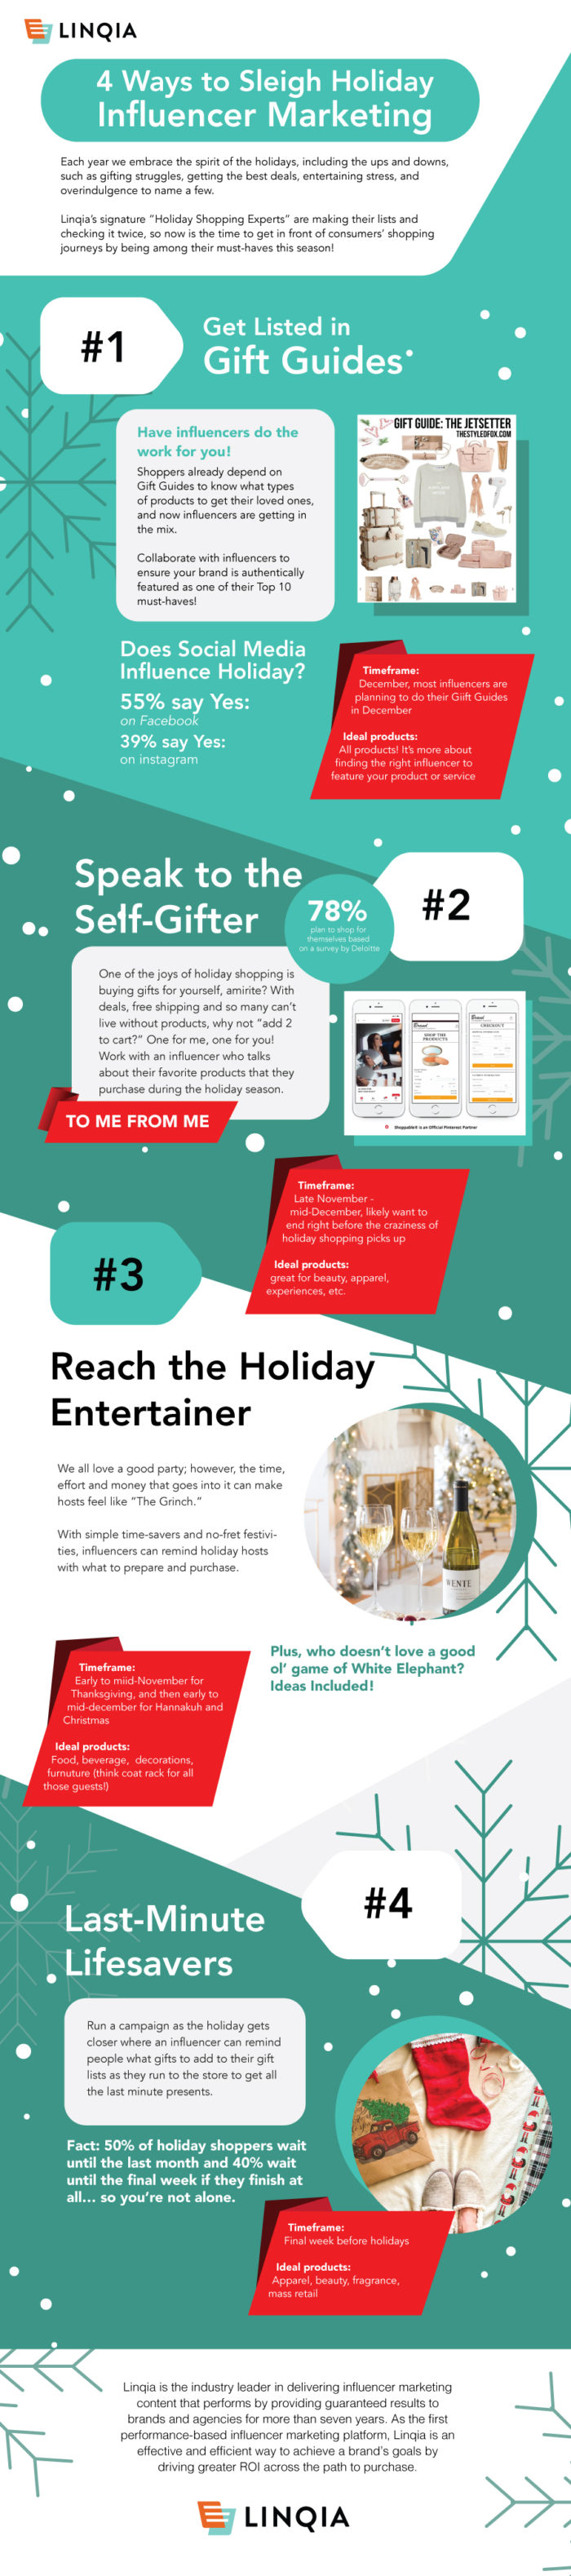 Influencer marketing for the holidays